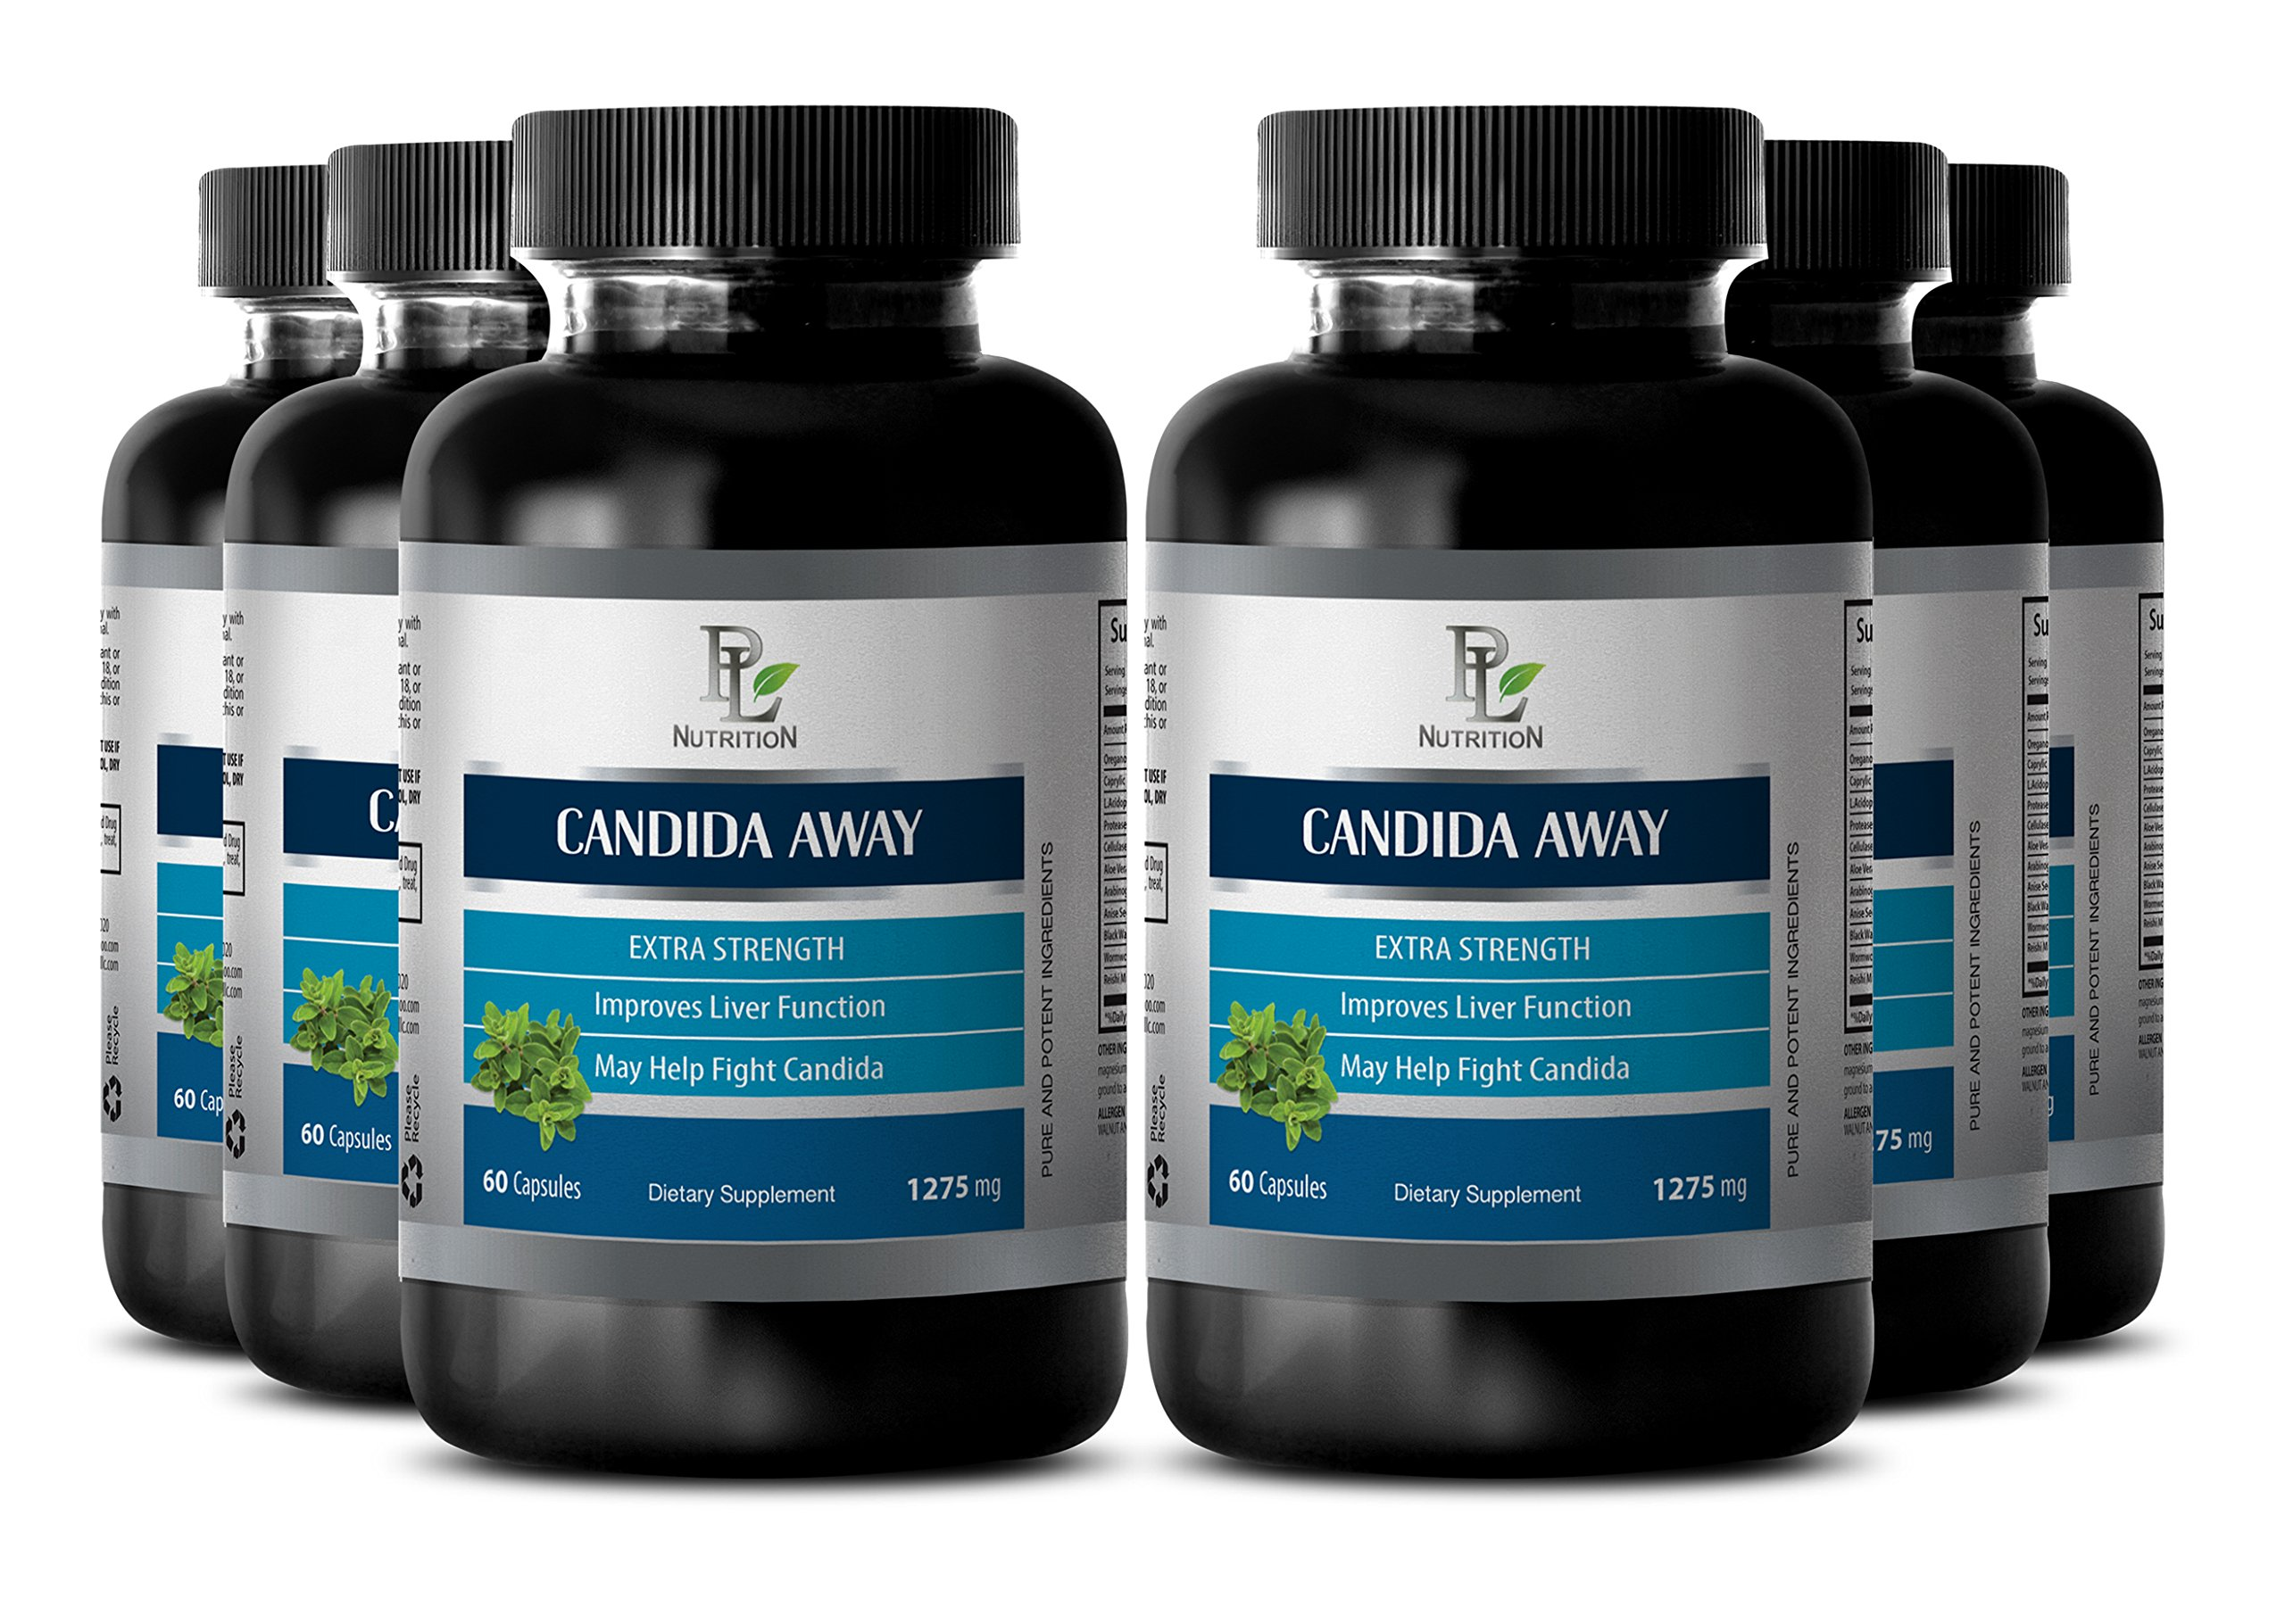 Natural detox herbs - CANDIDA AWAY Extra Strength - Candida pills for women - 6 Bottles 360 Capsules